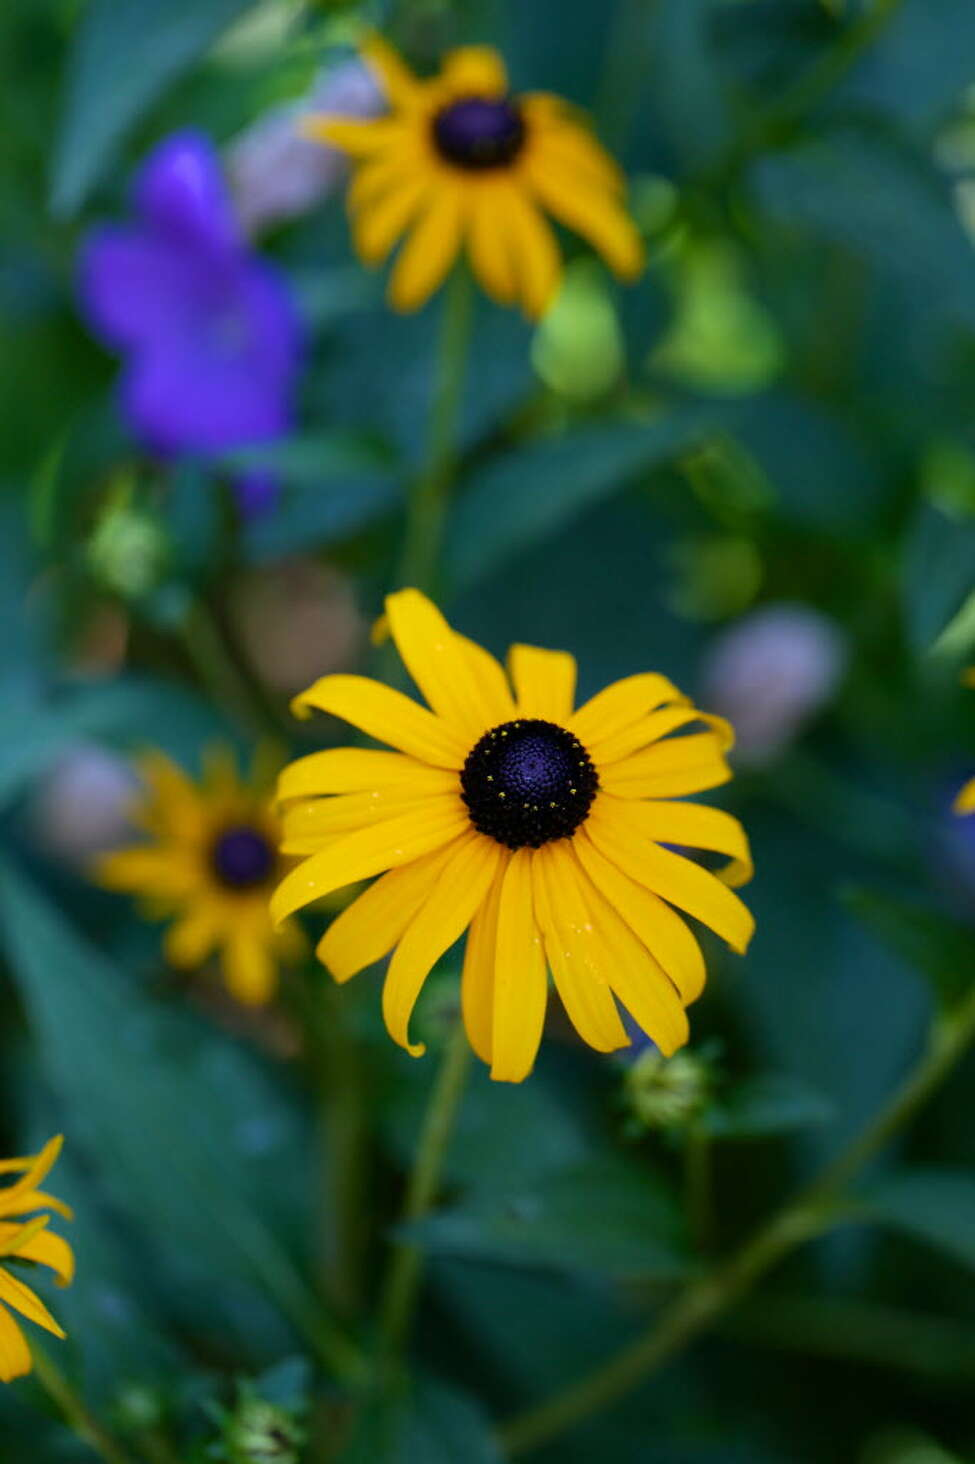 Black-Eyed Susans are a bright yellow daisy-like flower with dark centers. They are drought-tolerant and provide food for caterpillars, finches and bees. Photo provided by Getty Images.